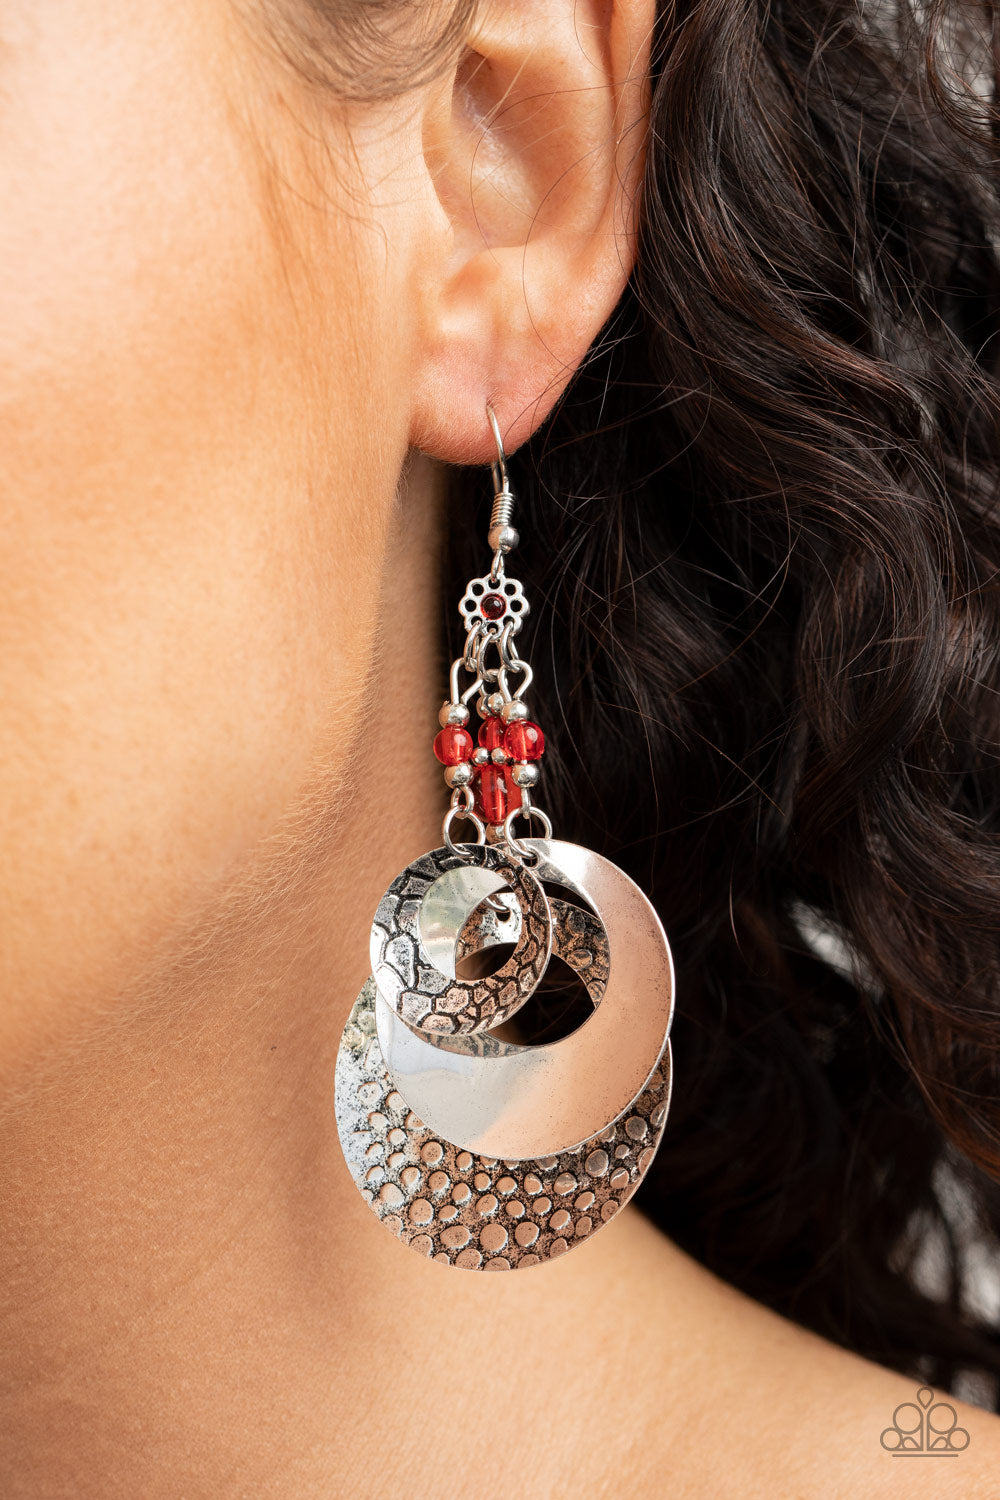 Paparazzi Jewelry & Accessories - Wonderlust Garden - Red Earrings. Bling By Titia Boutique